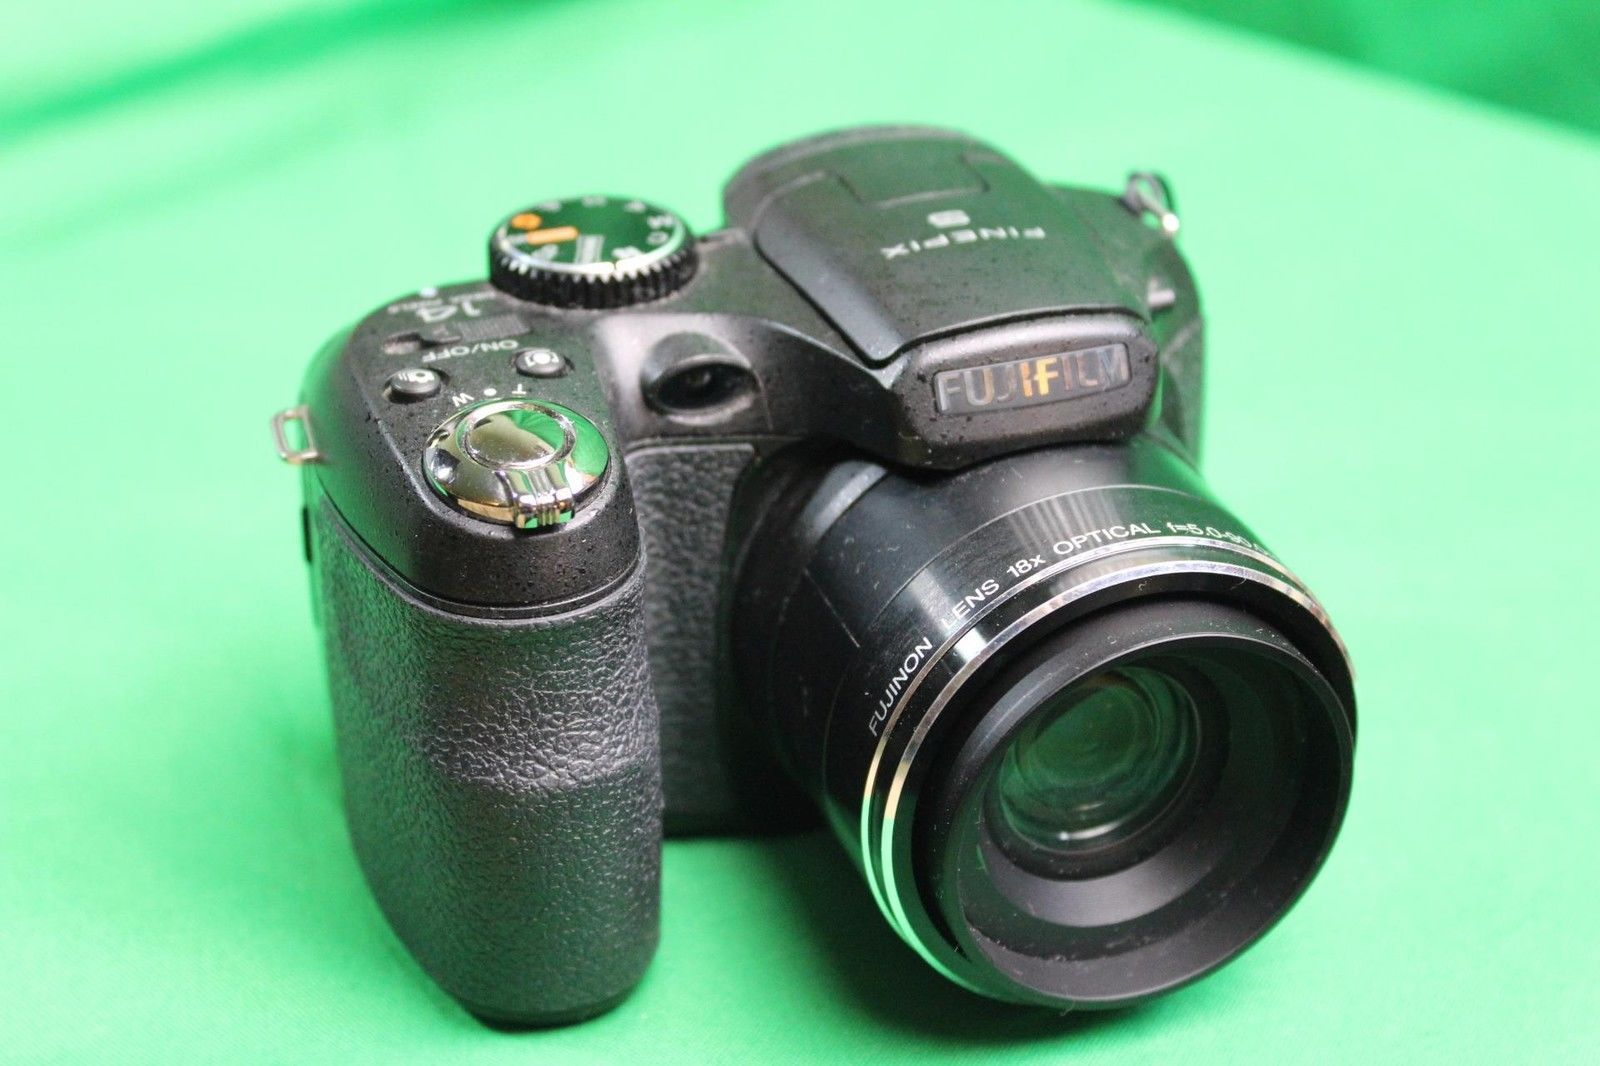 Working Of Digital Cameras Fujifilm Finepix S Series S2940 140mp Camera Black Tested